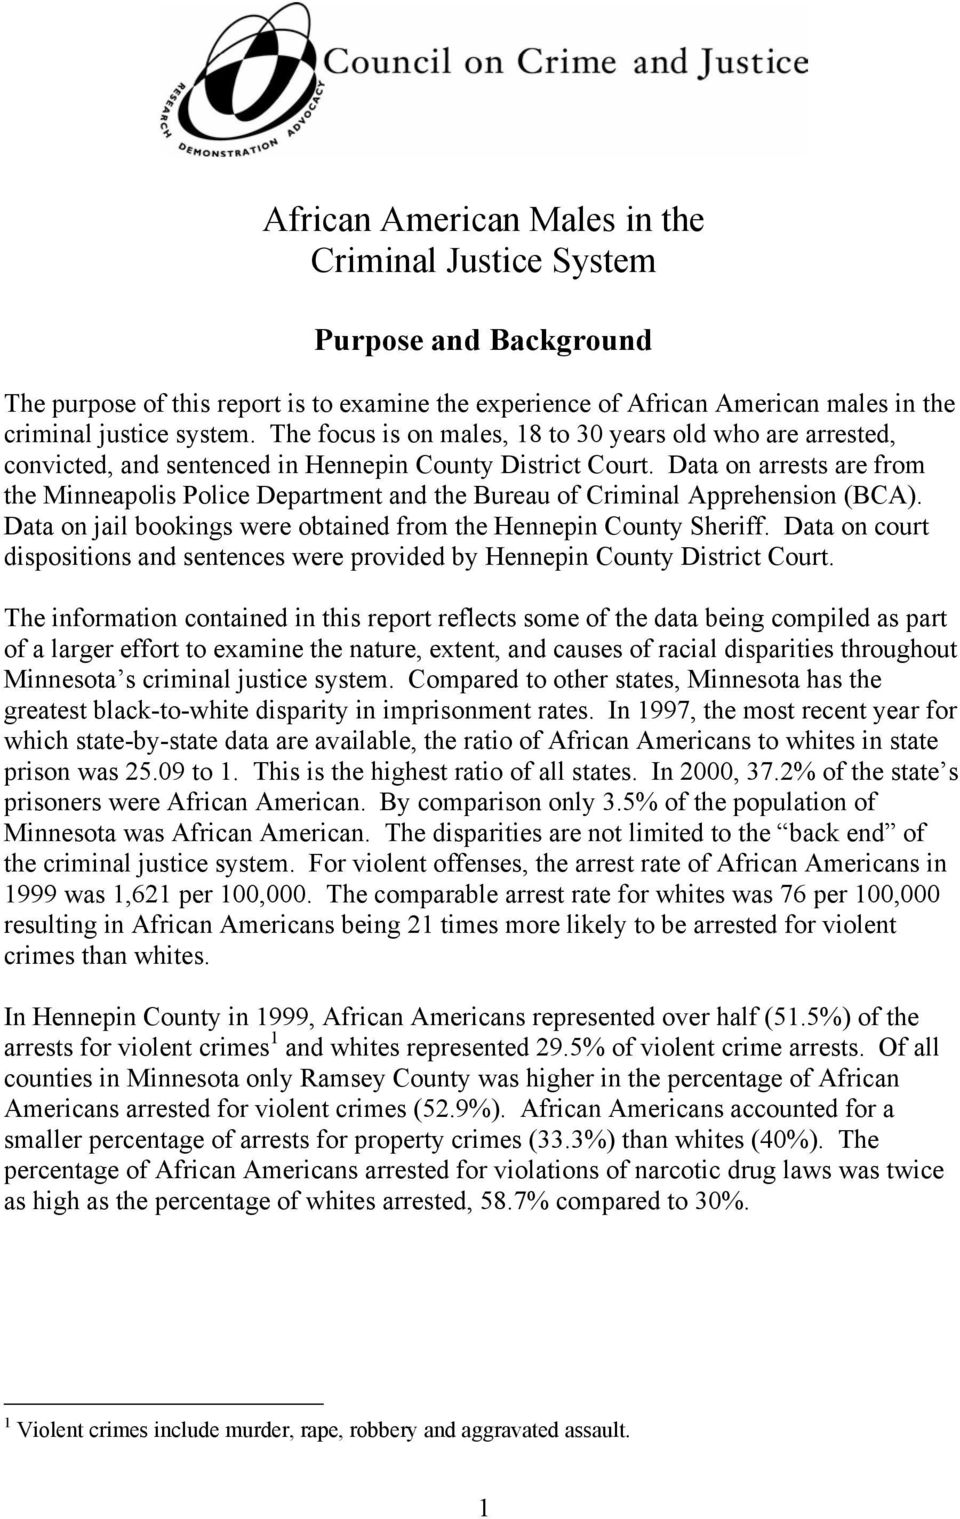 Data on arrests are from the Minneapolis Police Department and the Bureau of Criminal Apprehension (BCA). Data on jail bookings were obtained from the Hennepin County Sheriff.